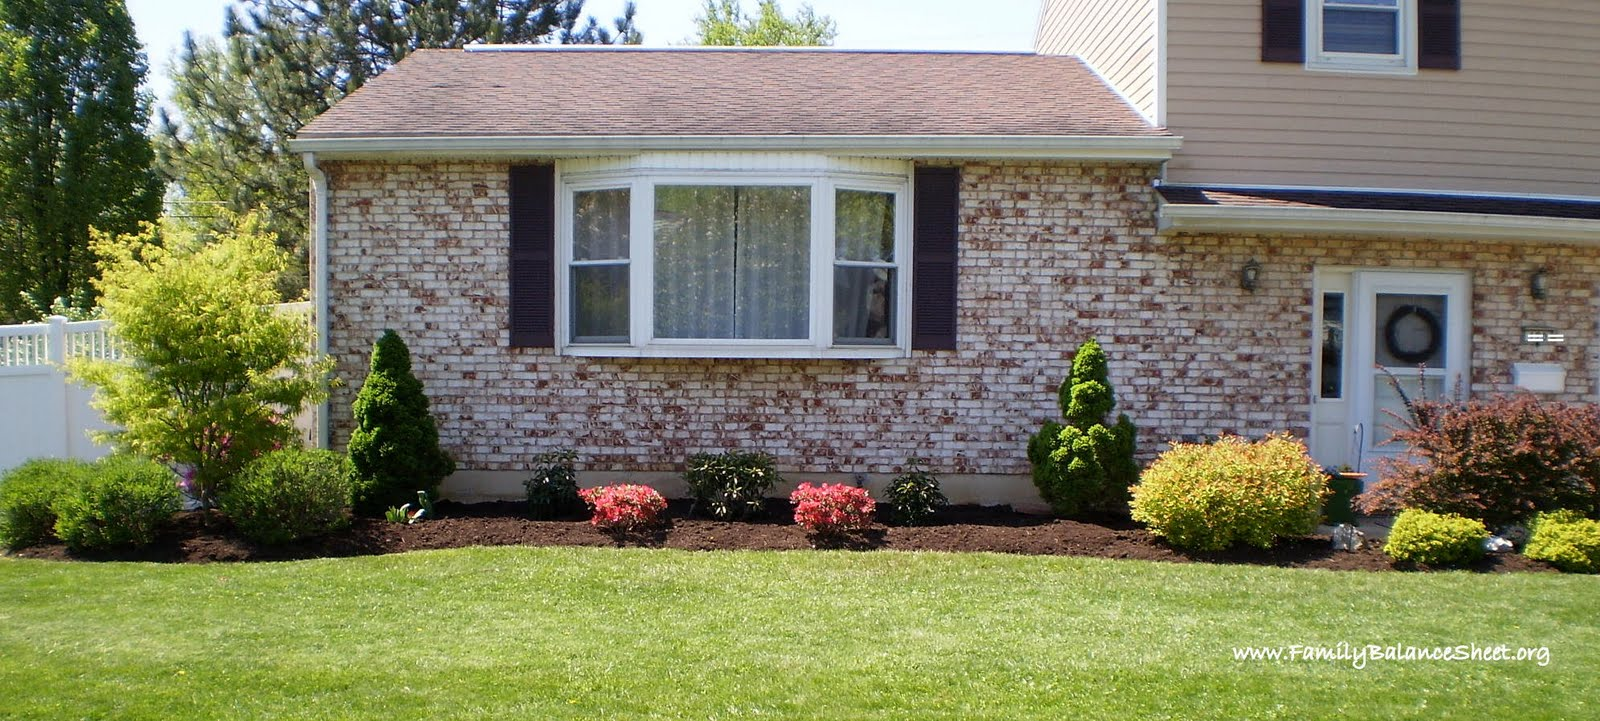 15 tips to help you design your front yard save money too for Basic landscape design